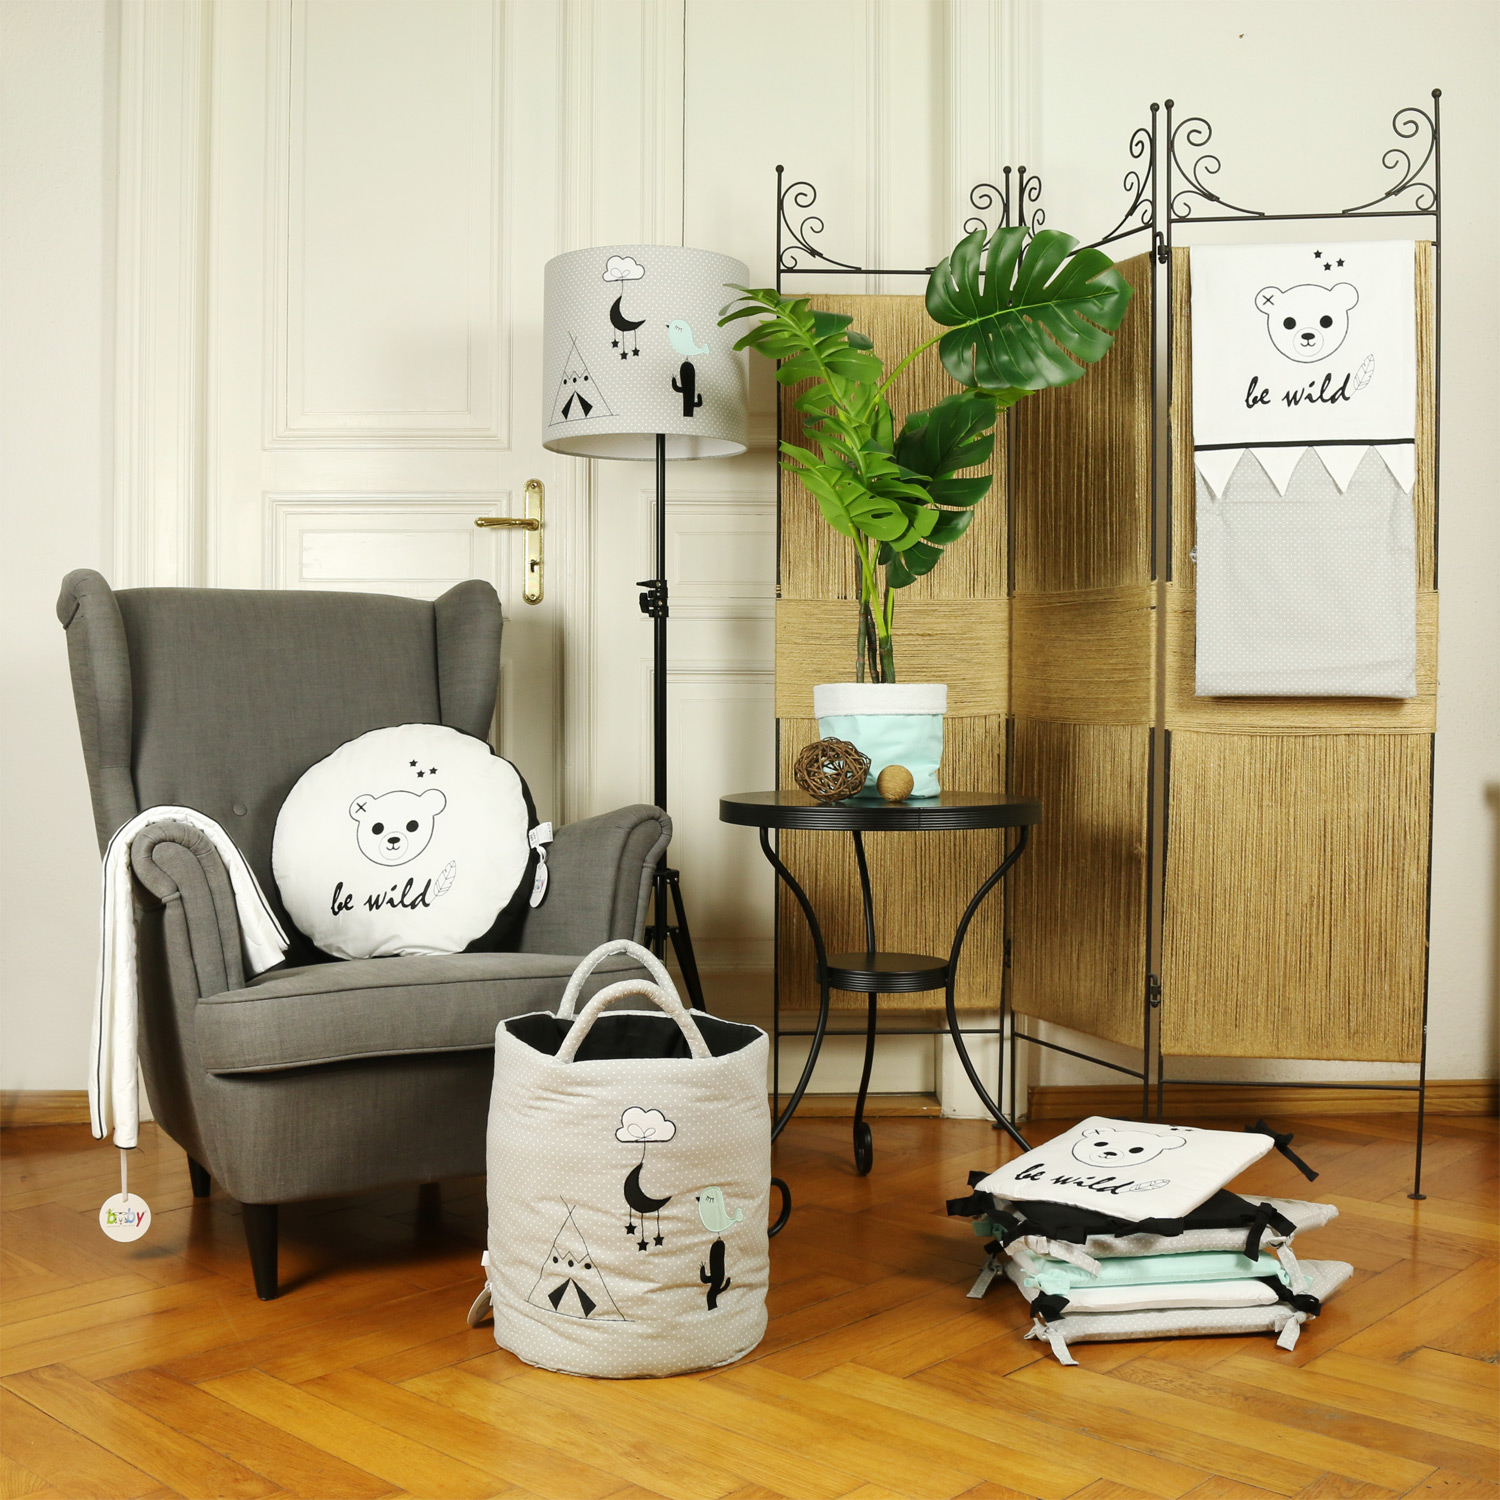 Baby Schlafsack Zu Warm Baby Lal® By Peri Interior For Kids Aus Berlin ★ Be